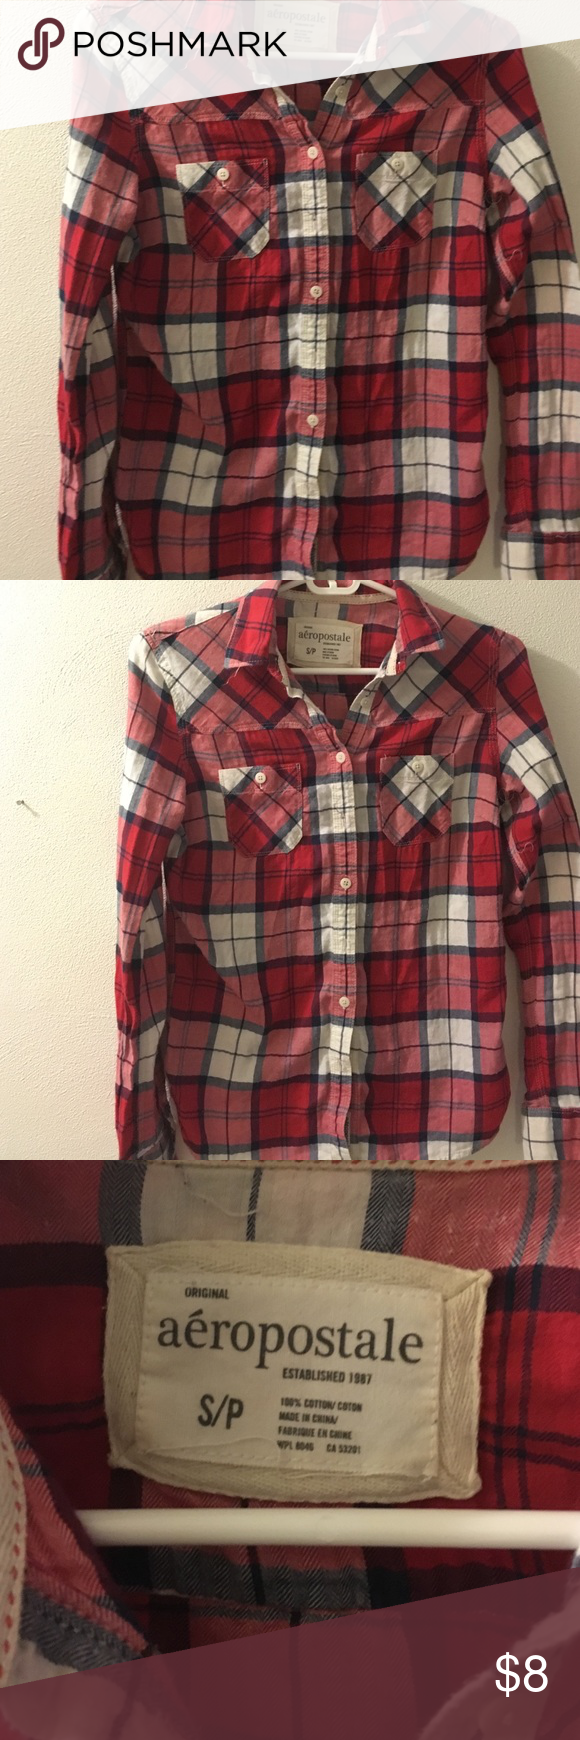 Multi color flannel shirt Longsleeve flannel shirt Aeropostale Tops Button Down Shirts